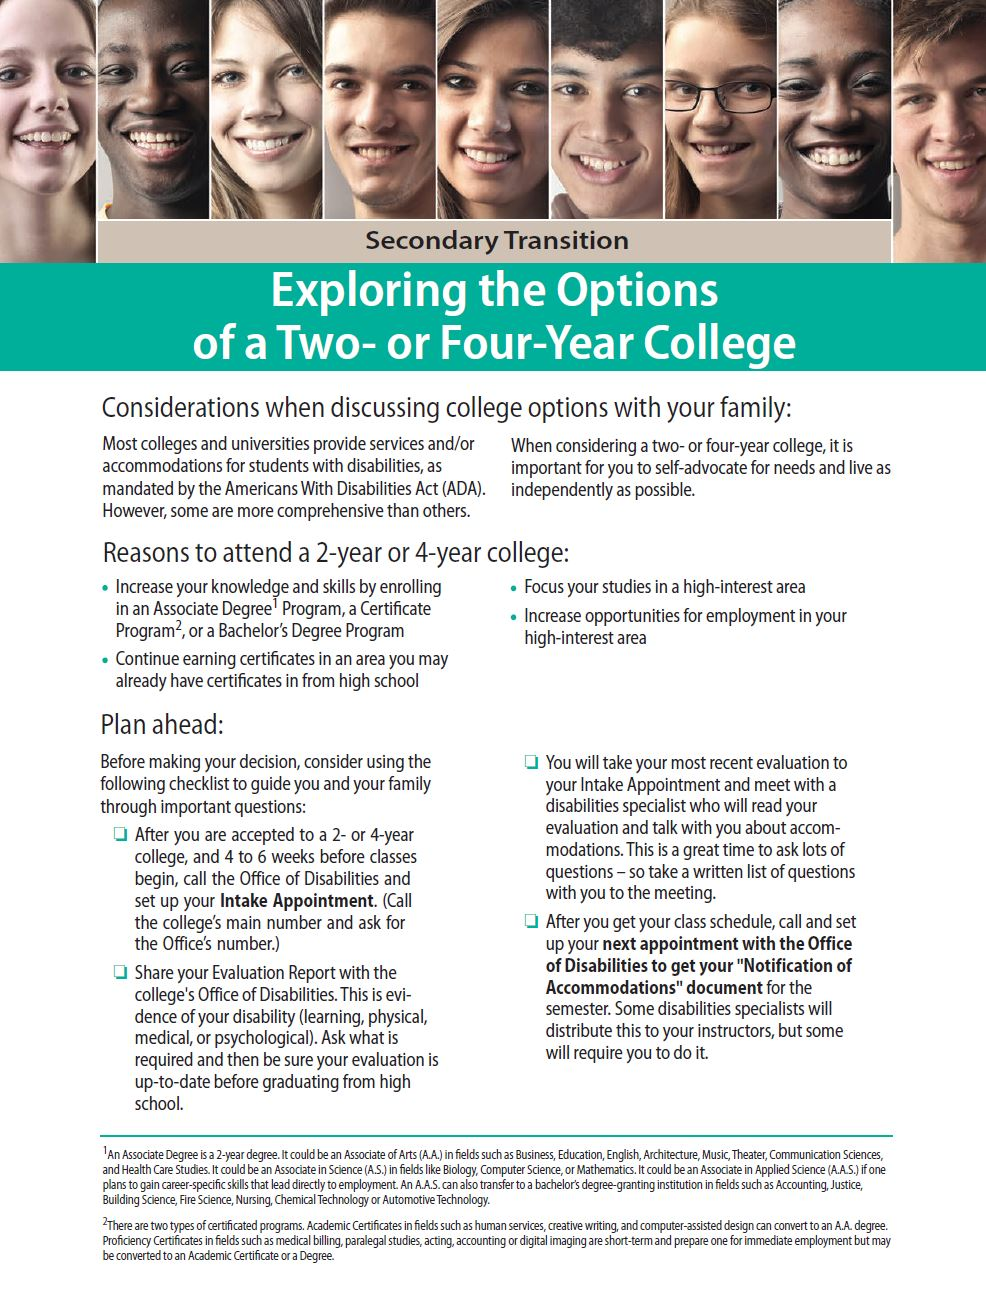 Secondary Transition: Exploring the Options of a Two- or Four-Year College